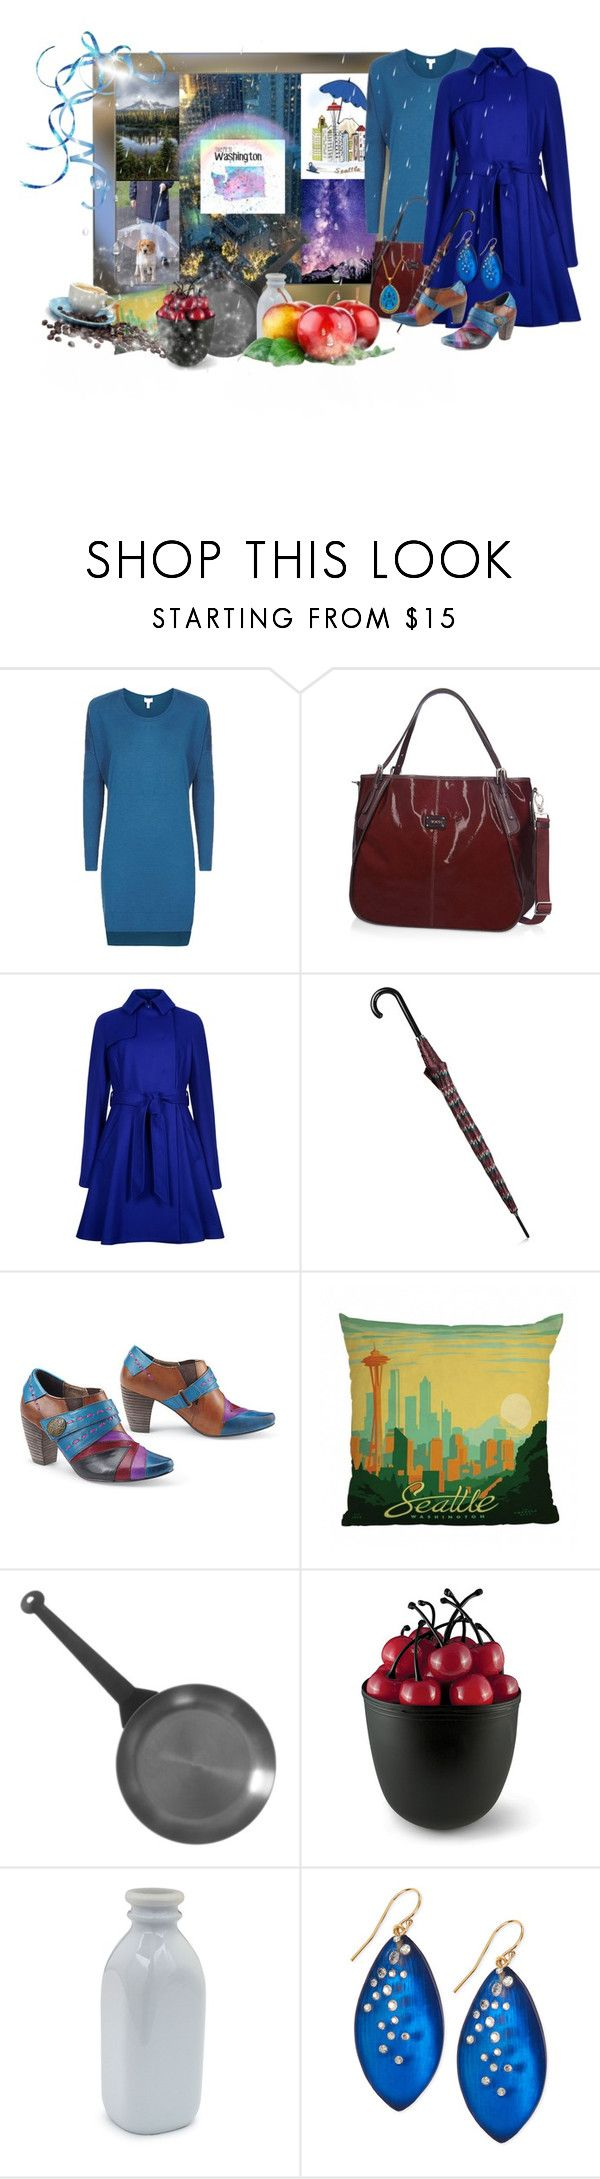 """""""Washington - """"Across the United States"""" (Contest)"""" by loveroses123 ❤ liked on Polyvore featuring Nicole Farhi, Tod's, Ted Baker, Missoni, DENY Designs, Alessi, Donald Carlson, Sur La Table, Alexis Bittar and Meghna Designs"""